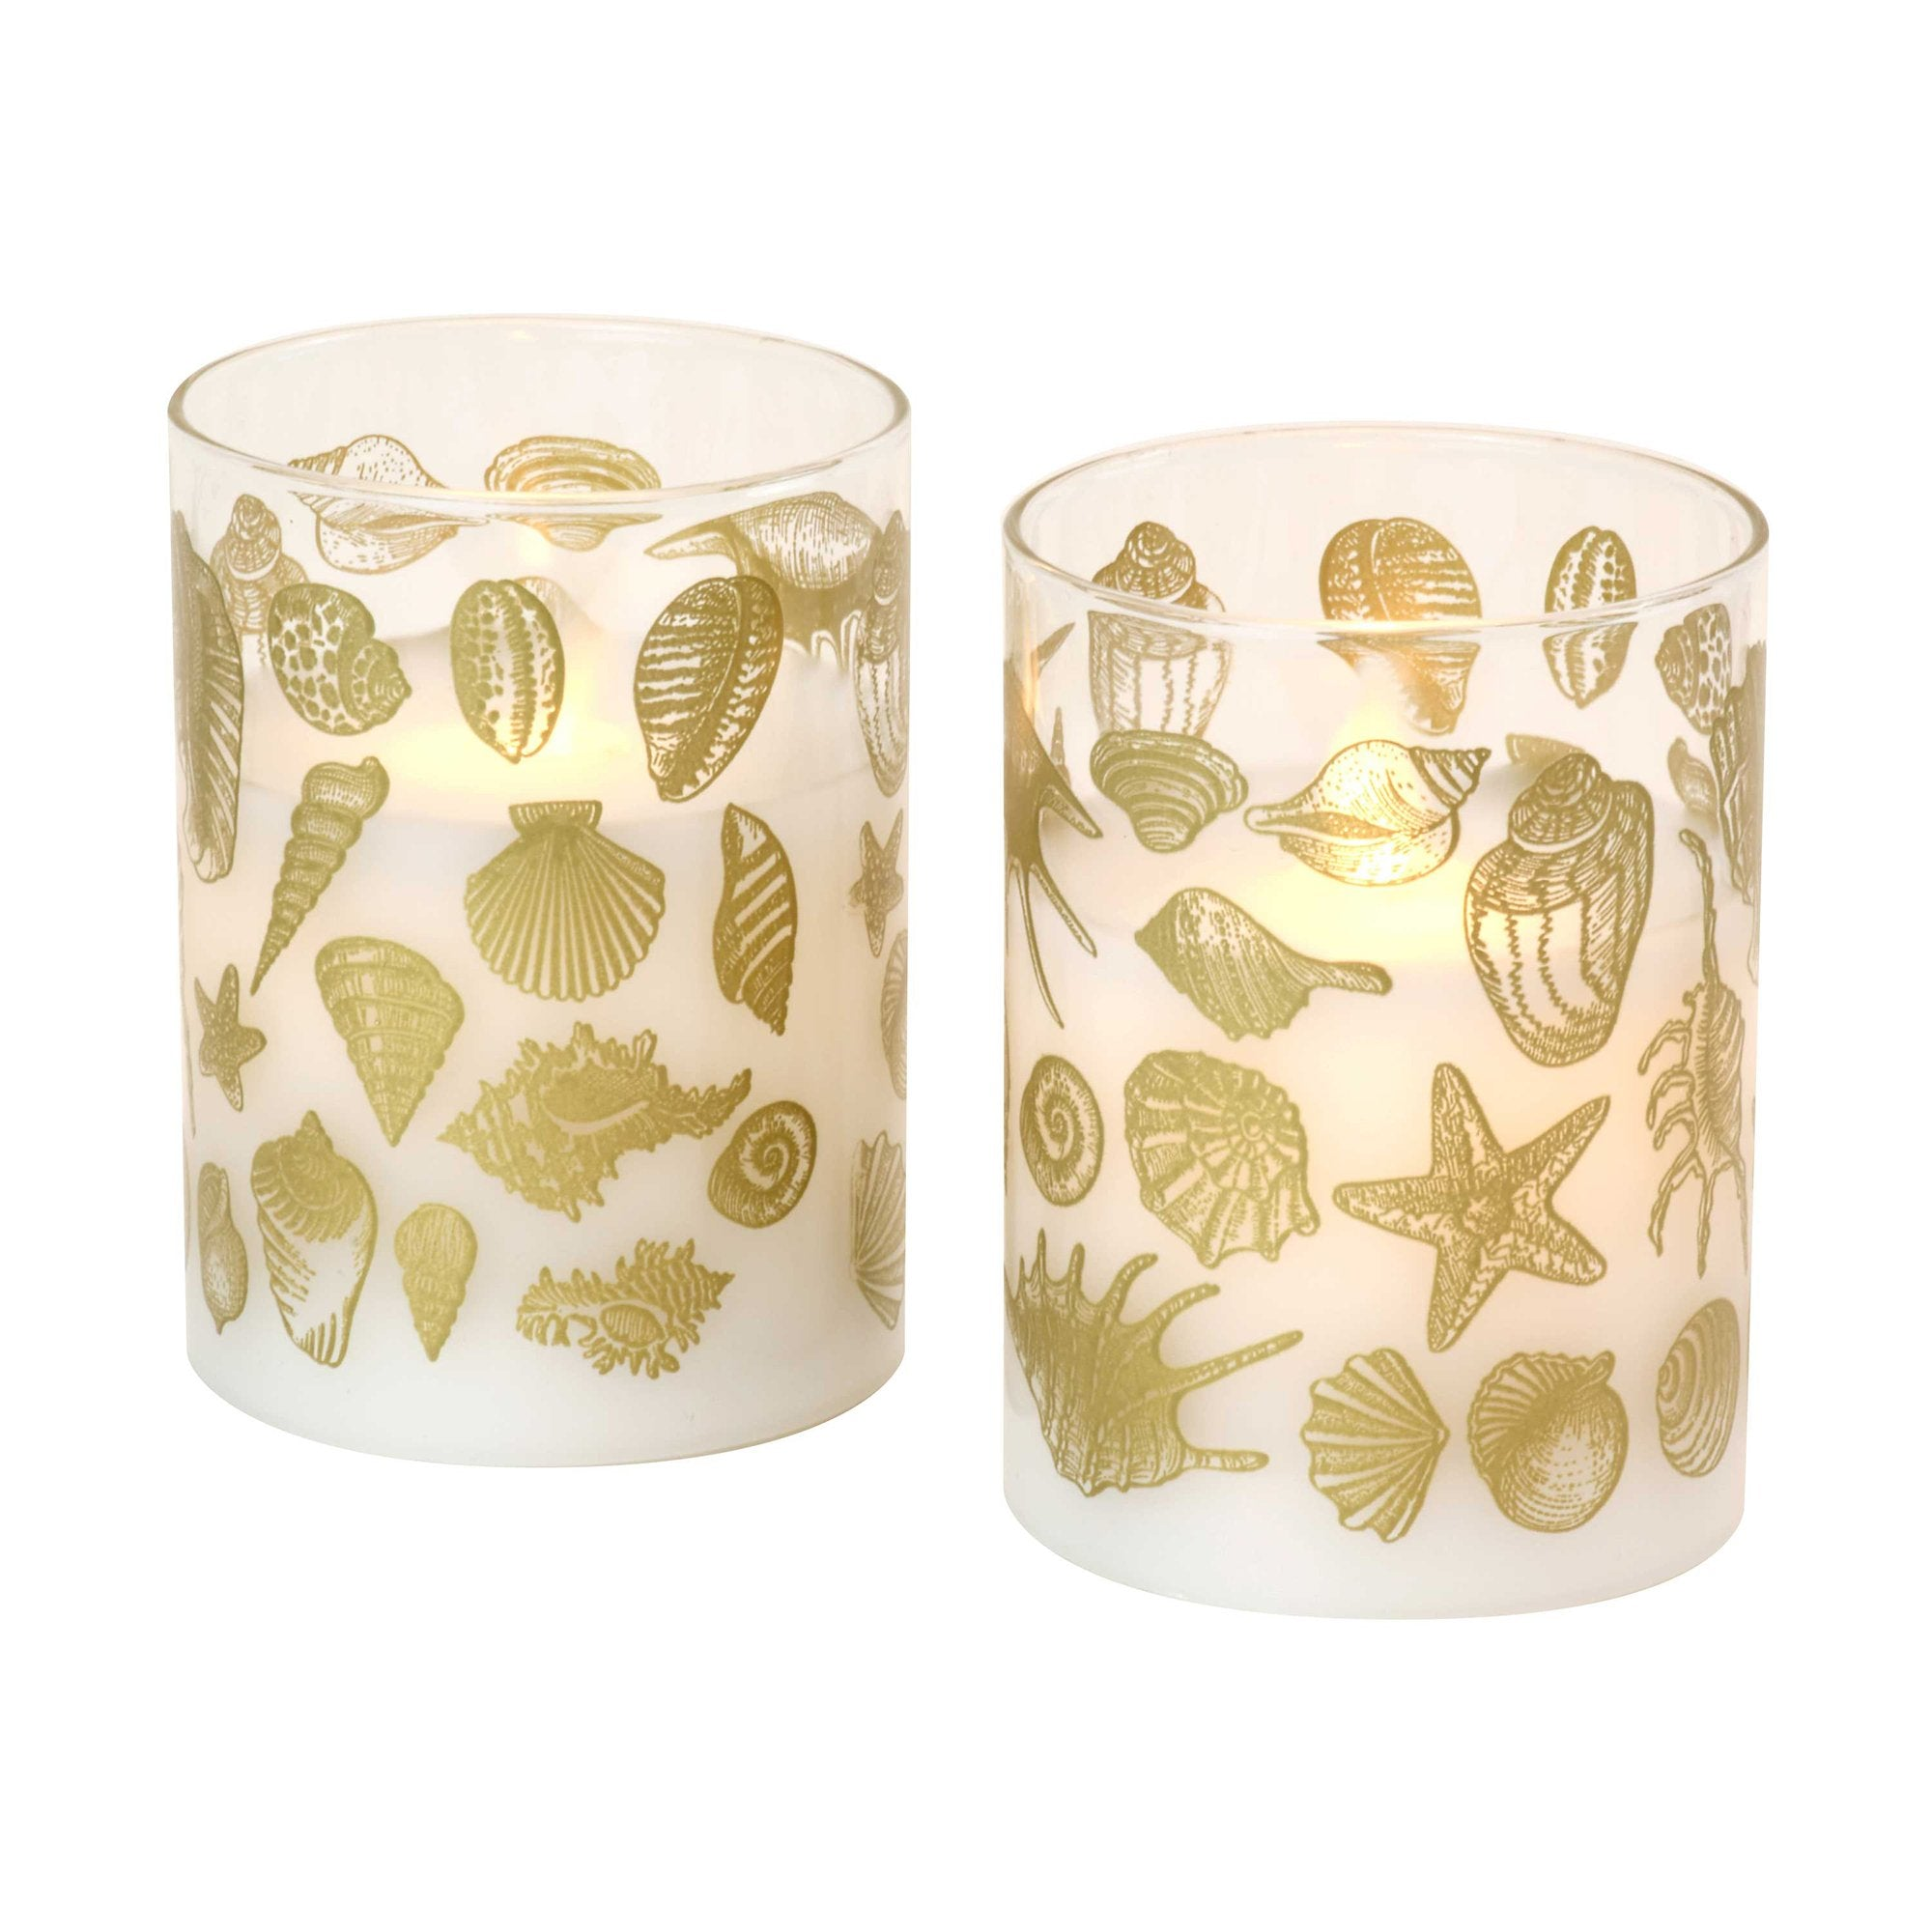 JH Specialties Inc. Seashell Moving Flame LED Glass Candles in Tan